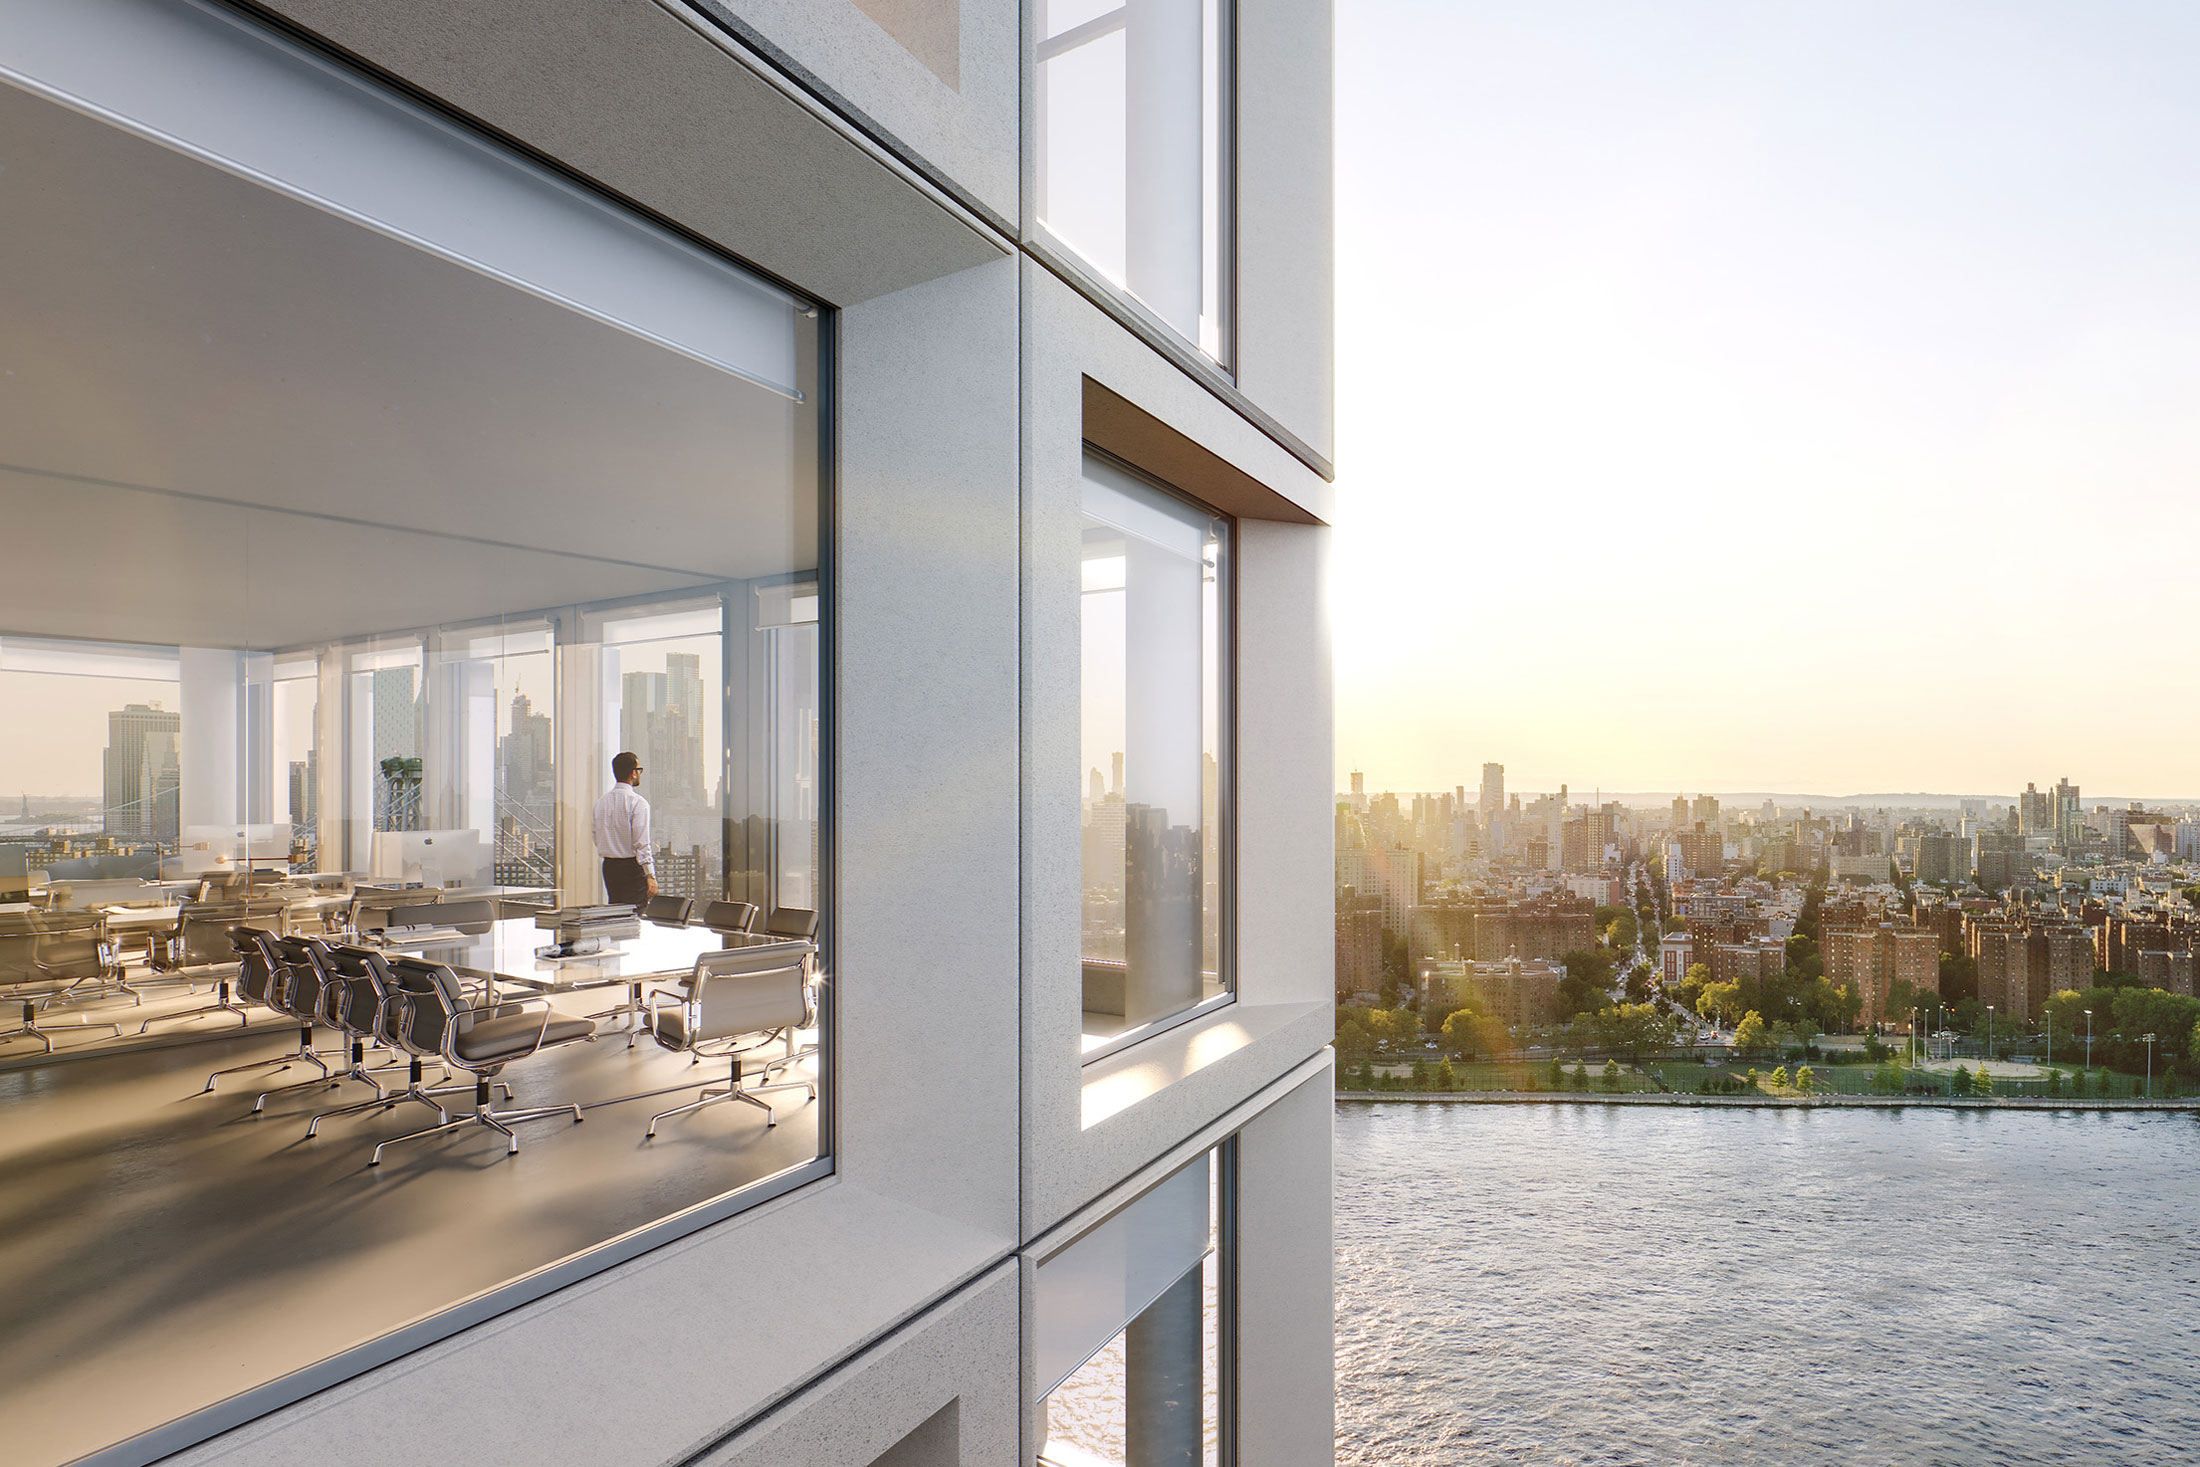 Architectural Rendering of the exterior of the Ten Grand Street project located in Brooklyn, New York